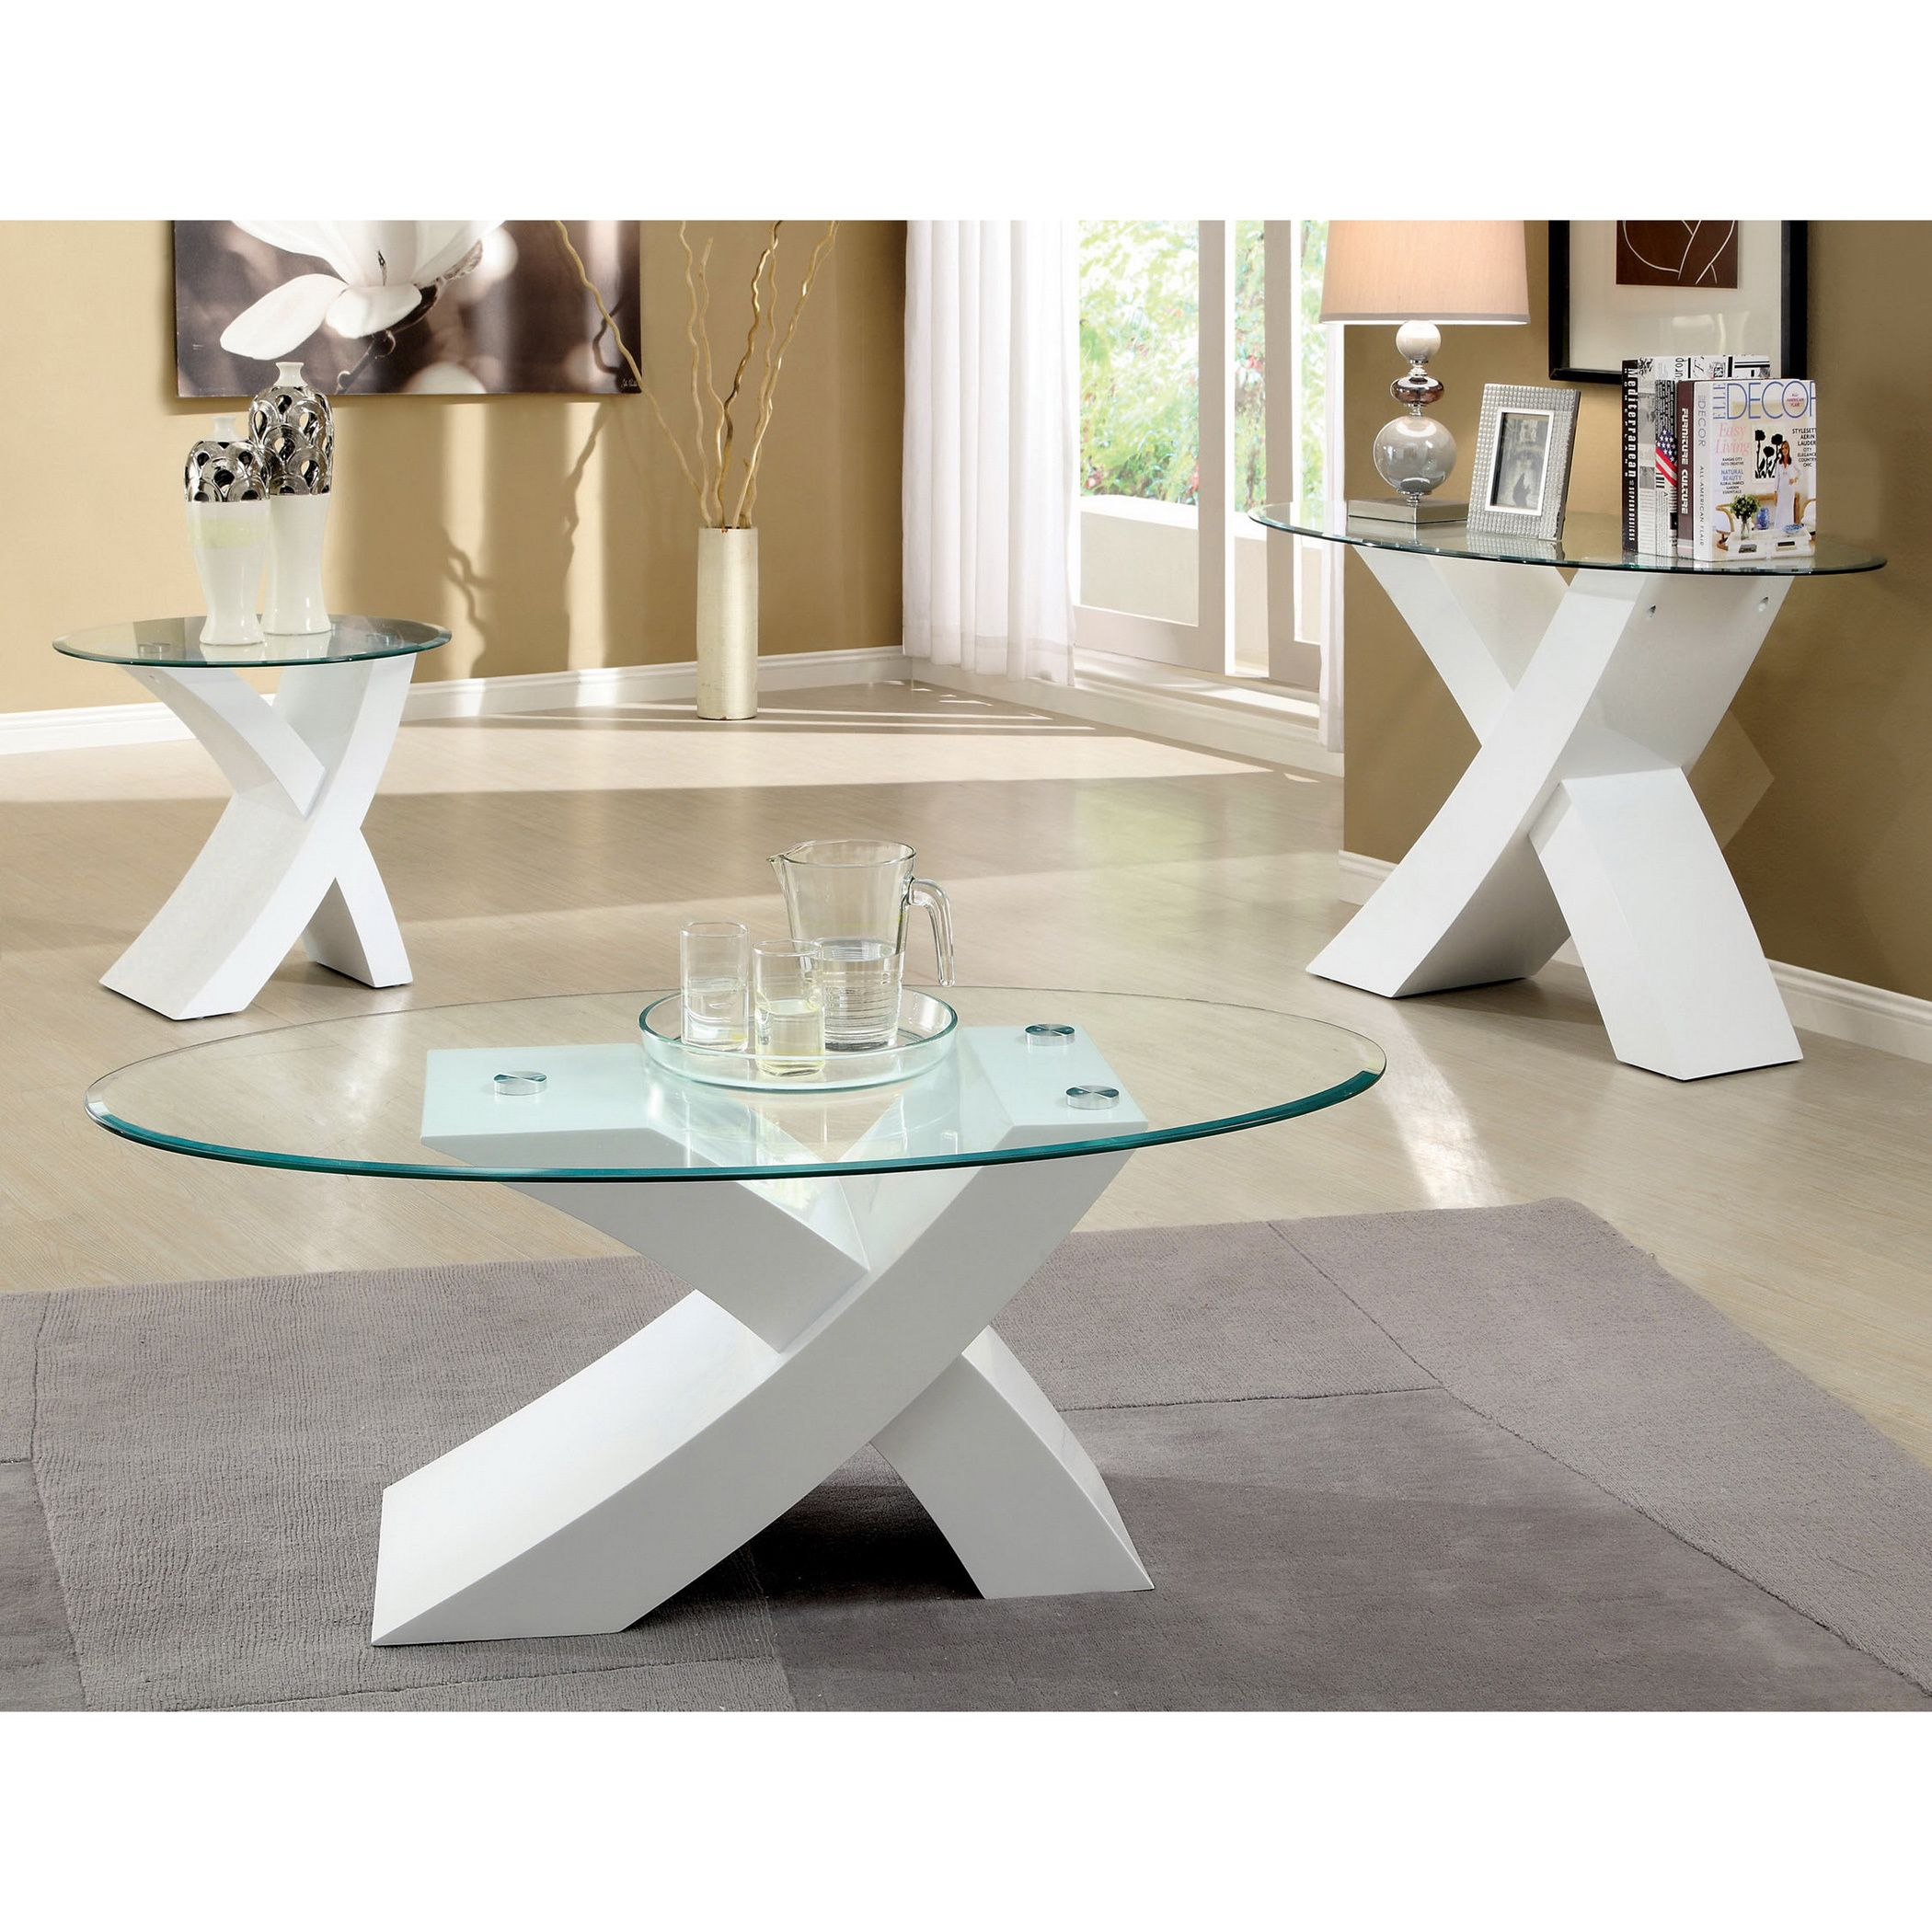 Furniture of America Cass 3-piece Modern Accent Sofa Coffee End Table Set  sc 1 st  Pinterest & Furniture of America Cass 3-piece Modern Accent Sofa Coffee End ...